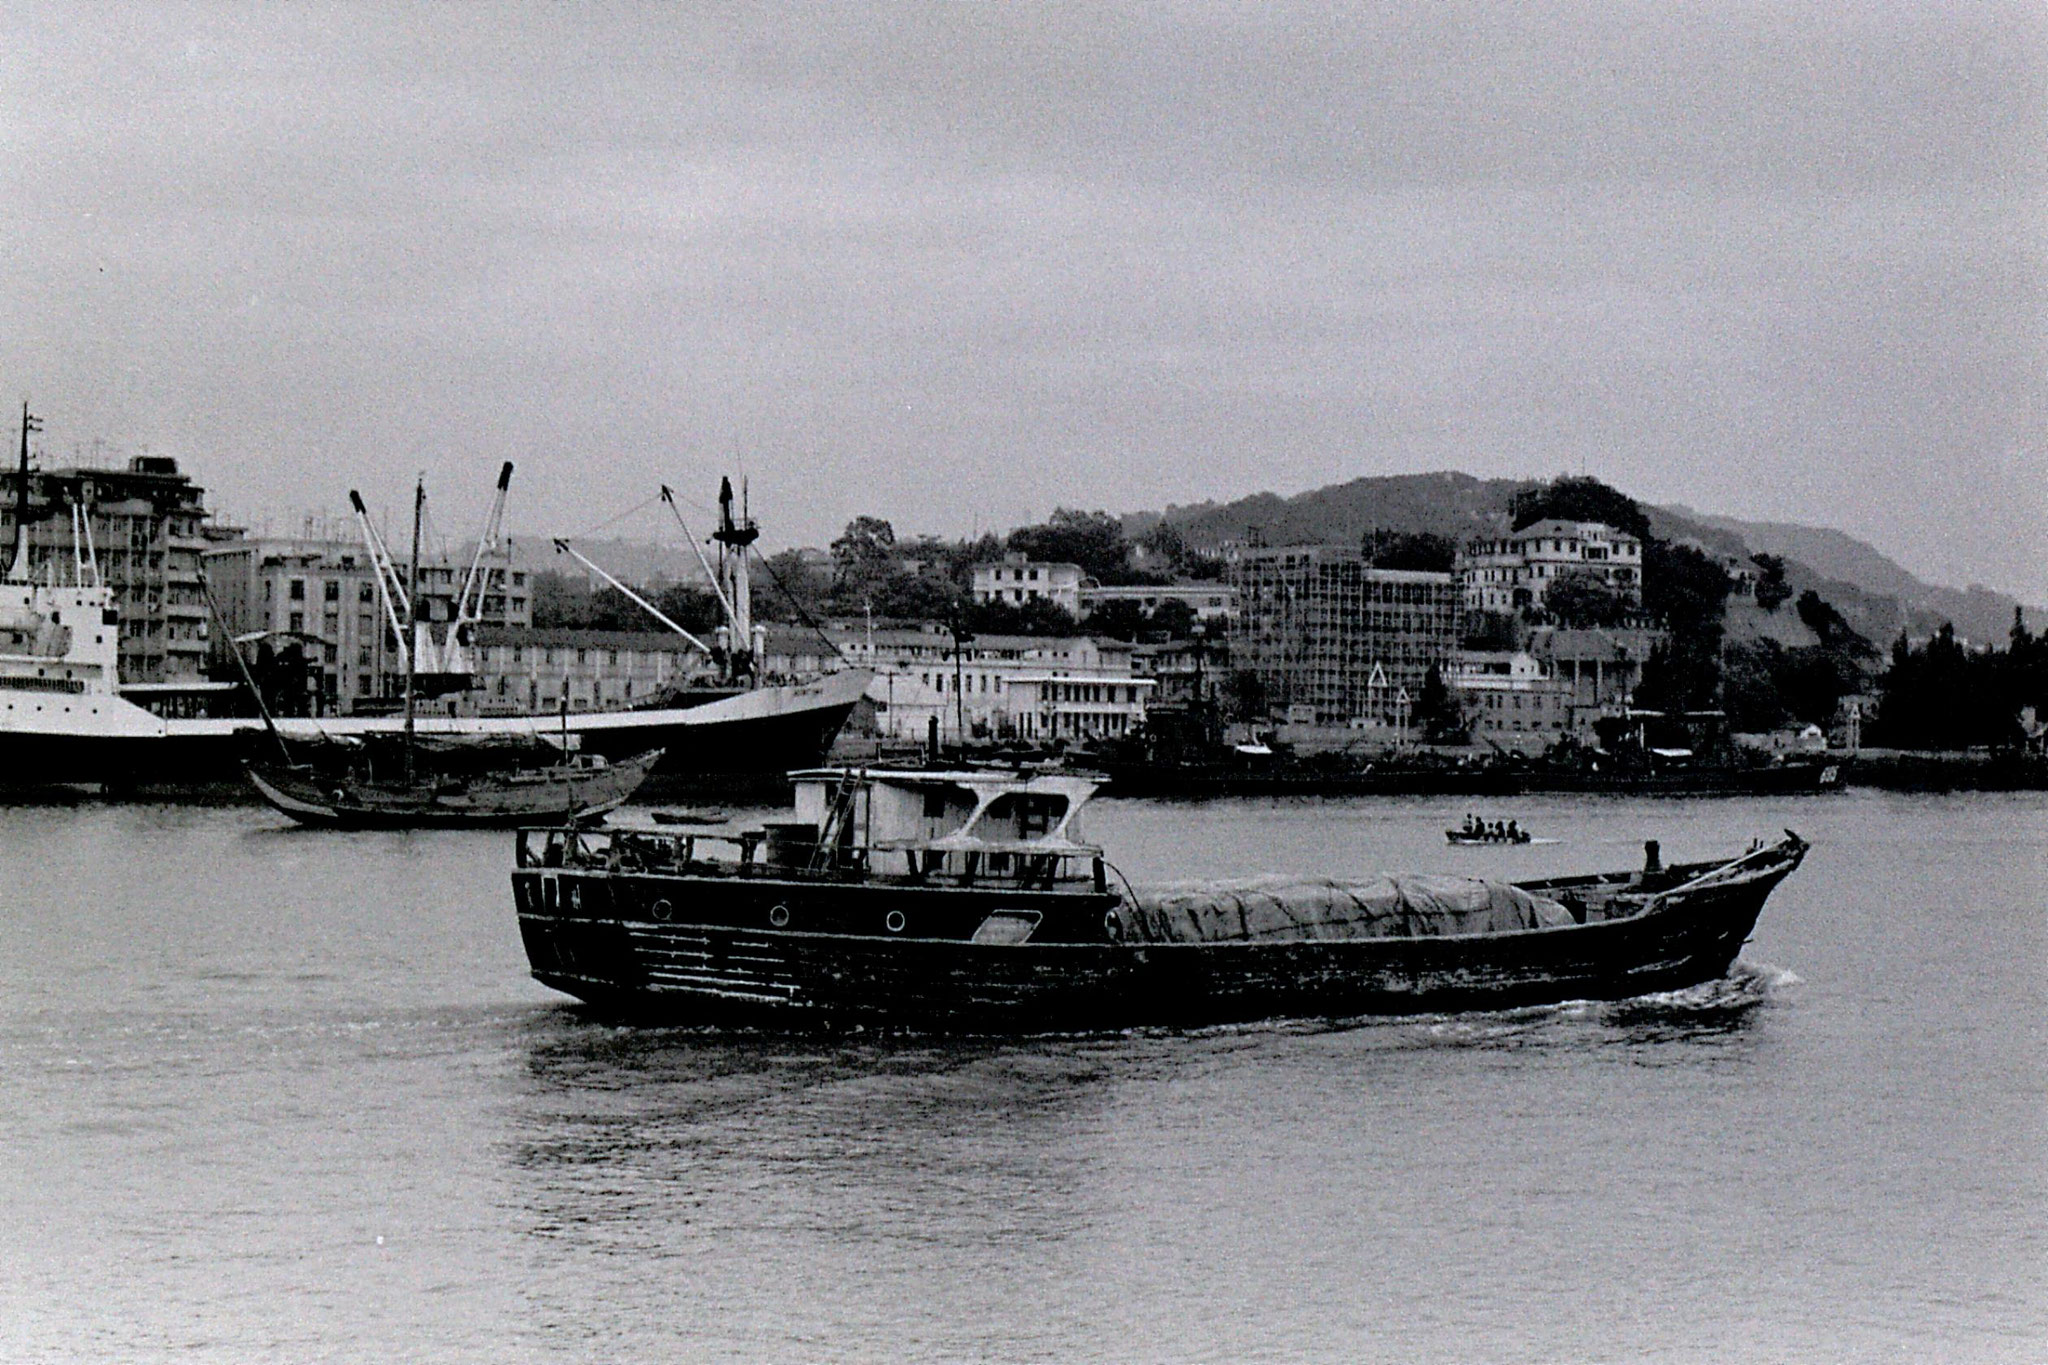 30/3/1989: 32: Xiamen ships from ferry to Gulanggu